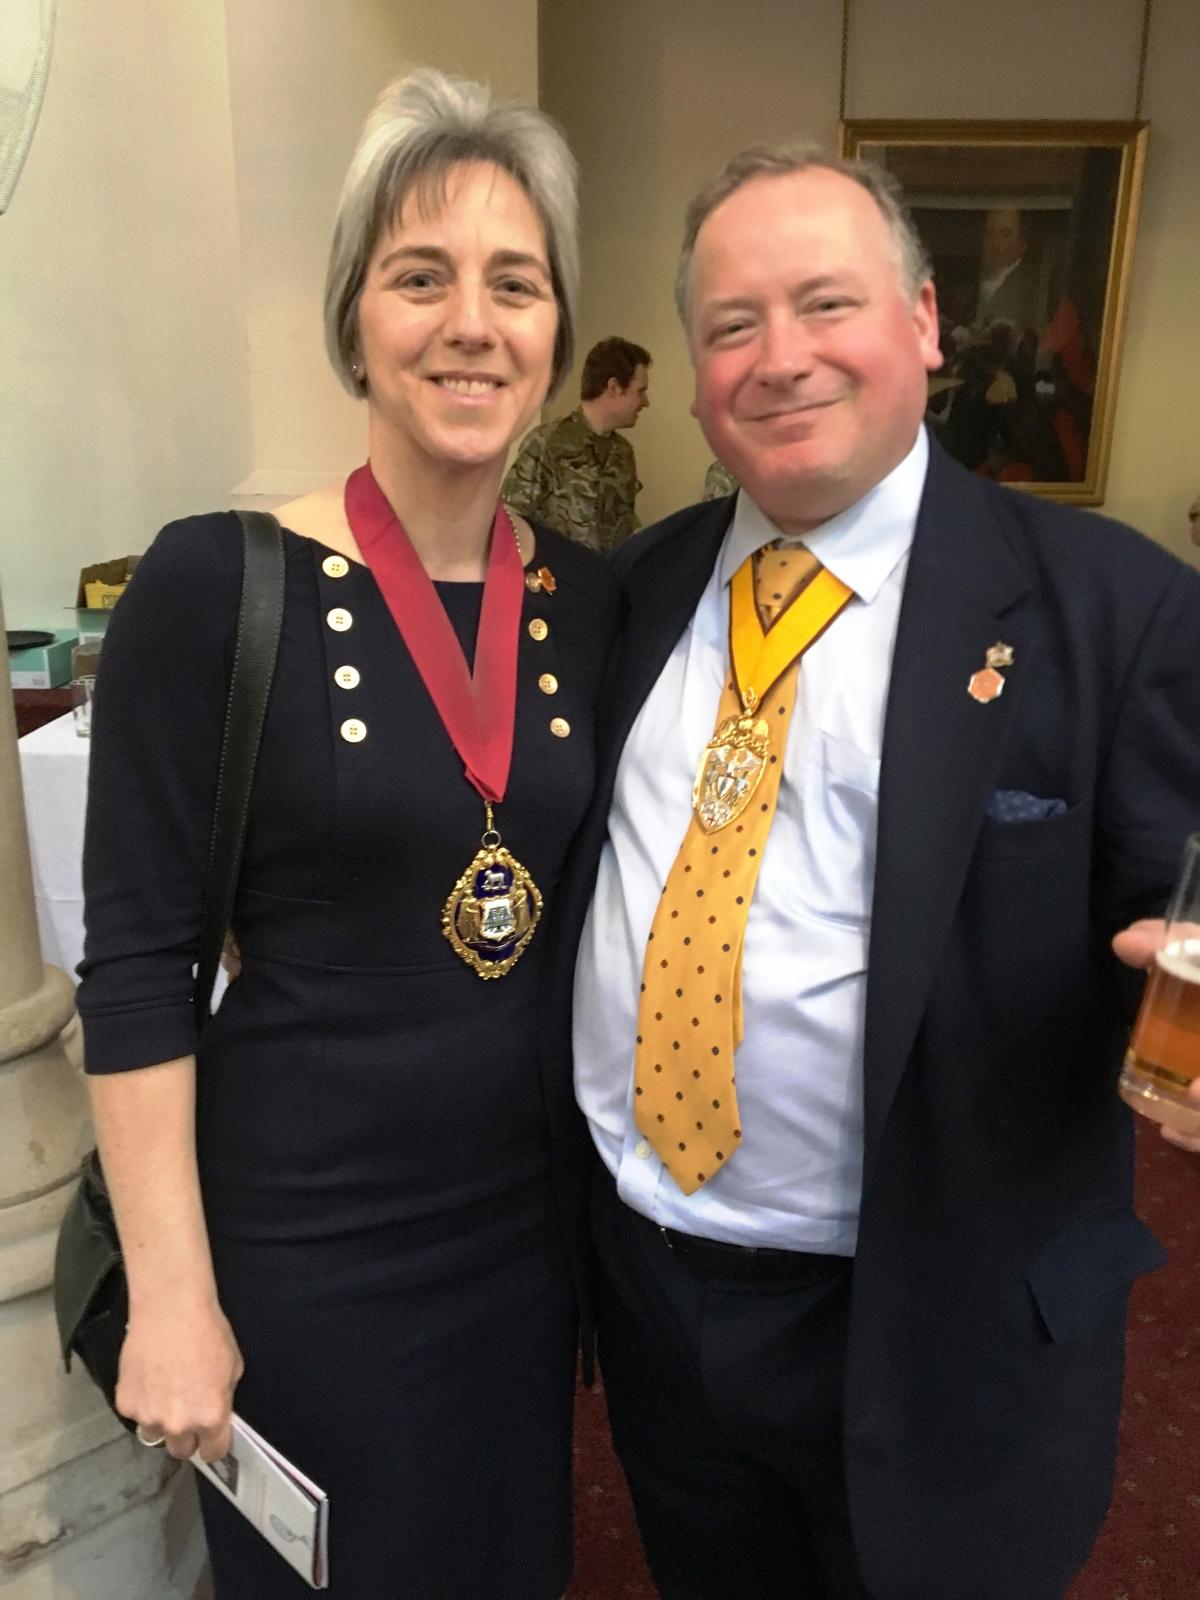 Lord Mayor's Big Curry Lunch